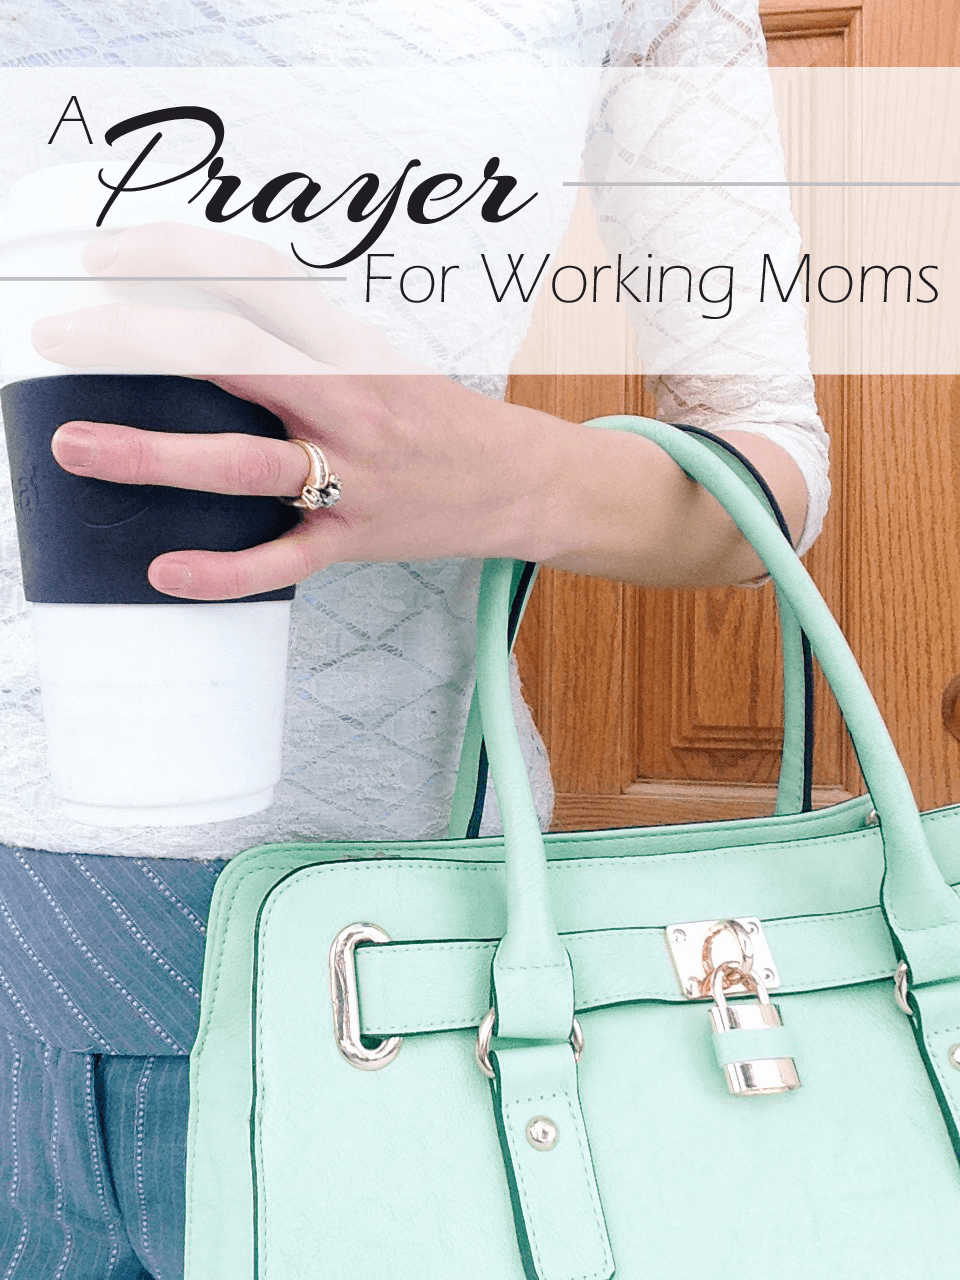 prayerforworkingmoms